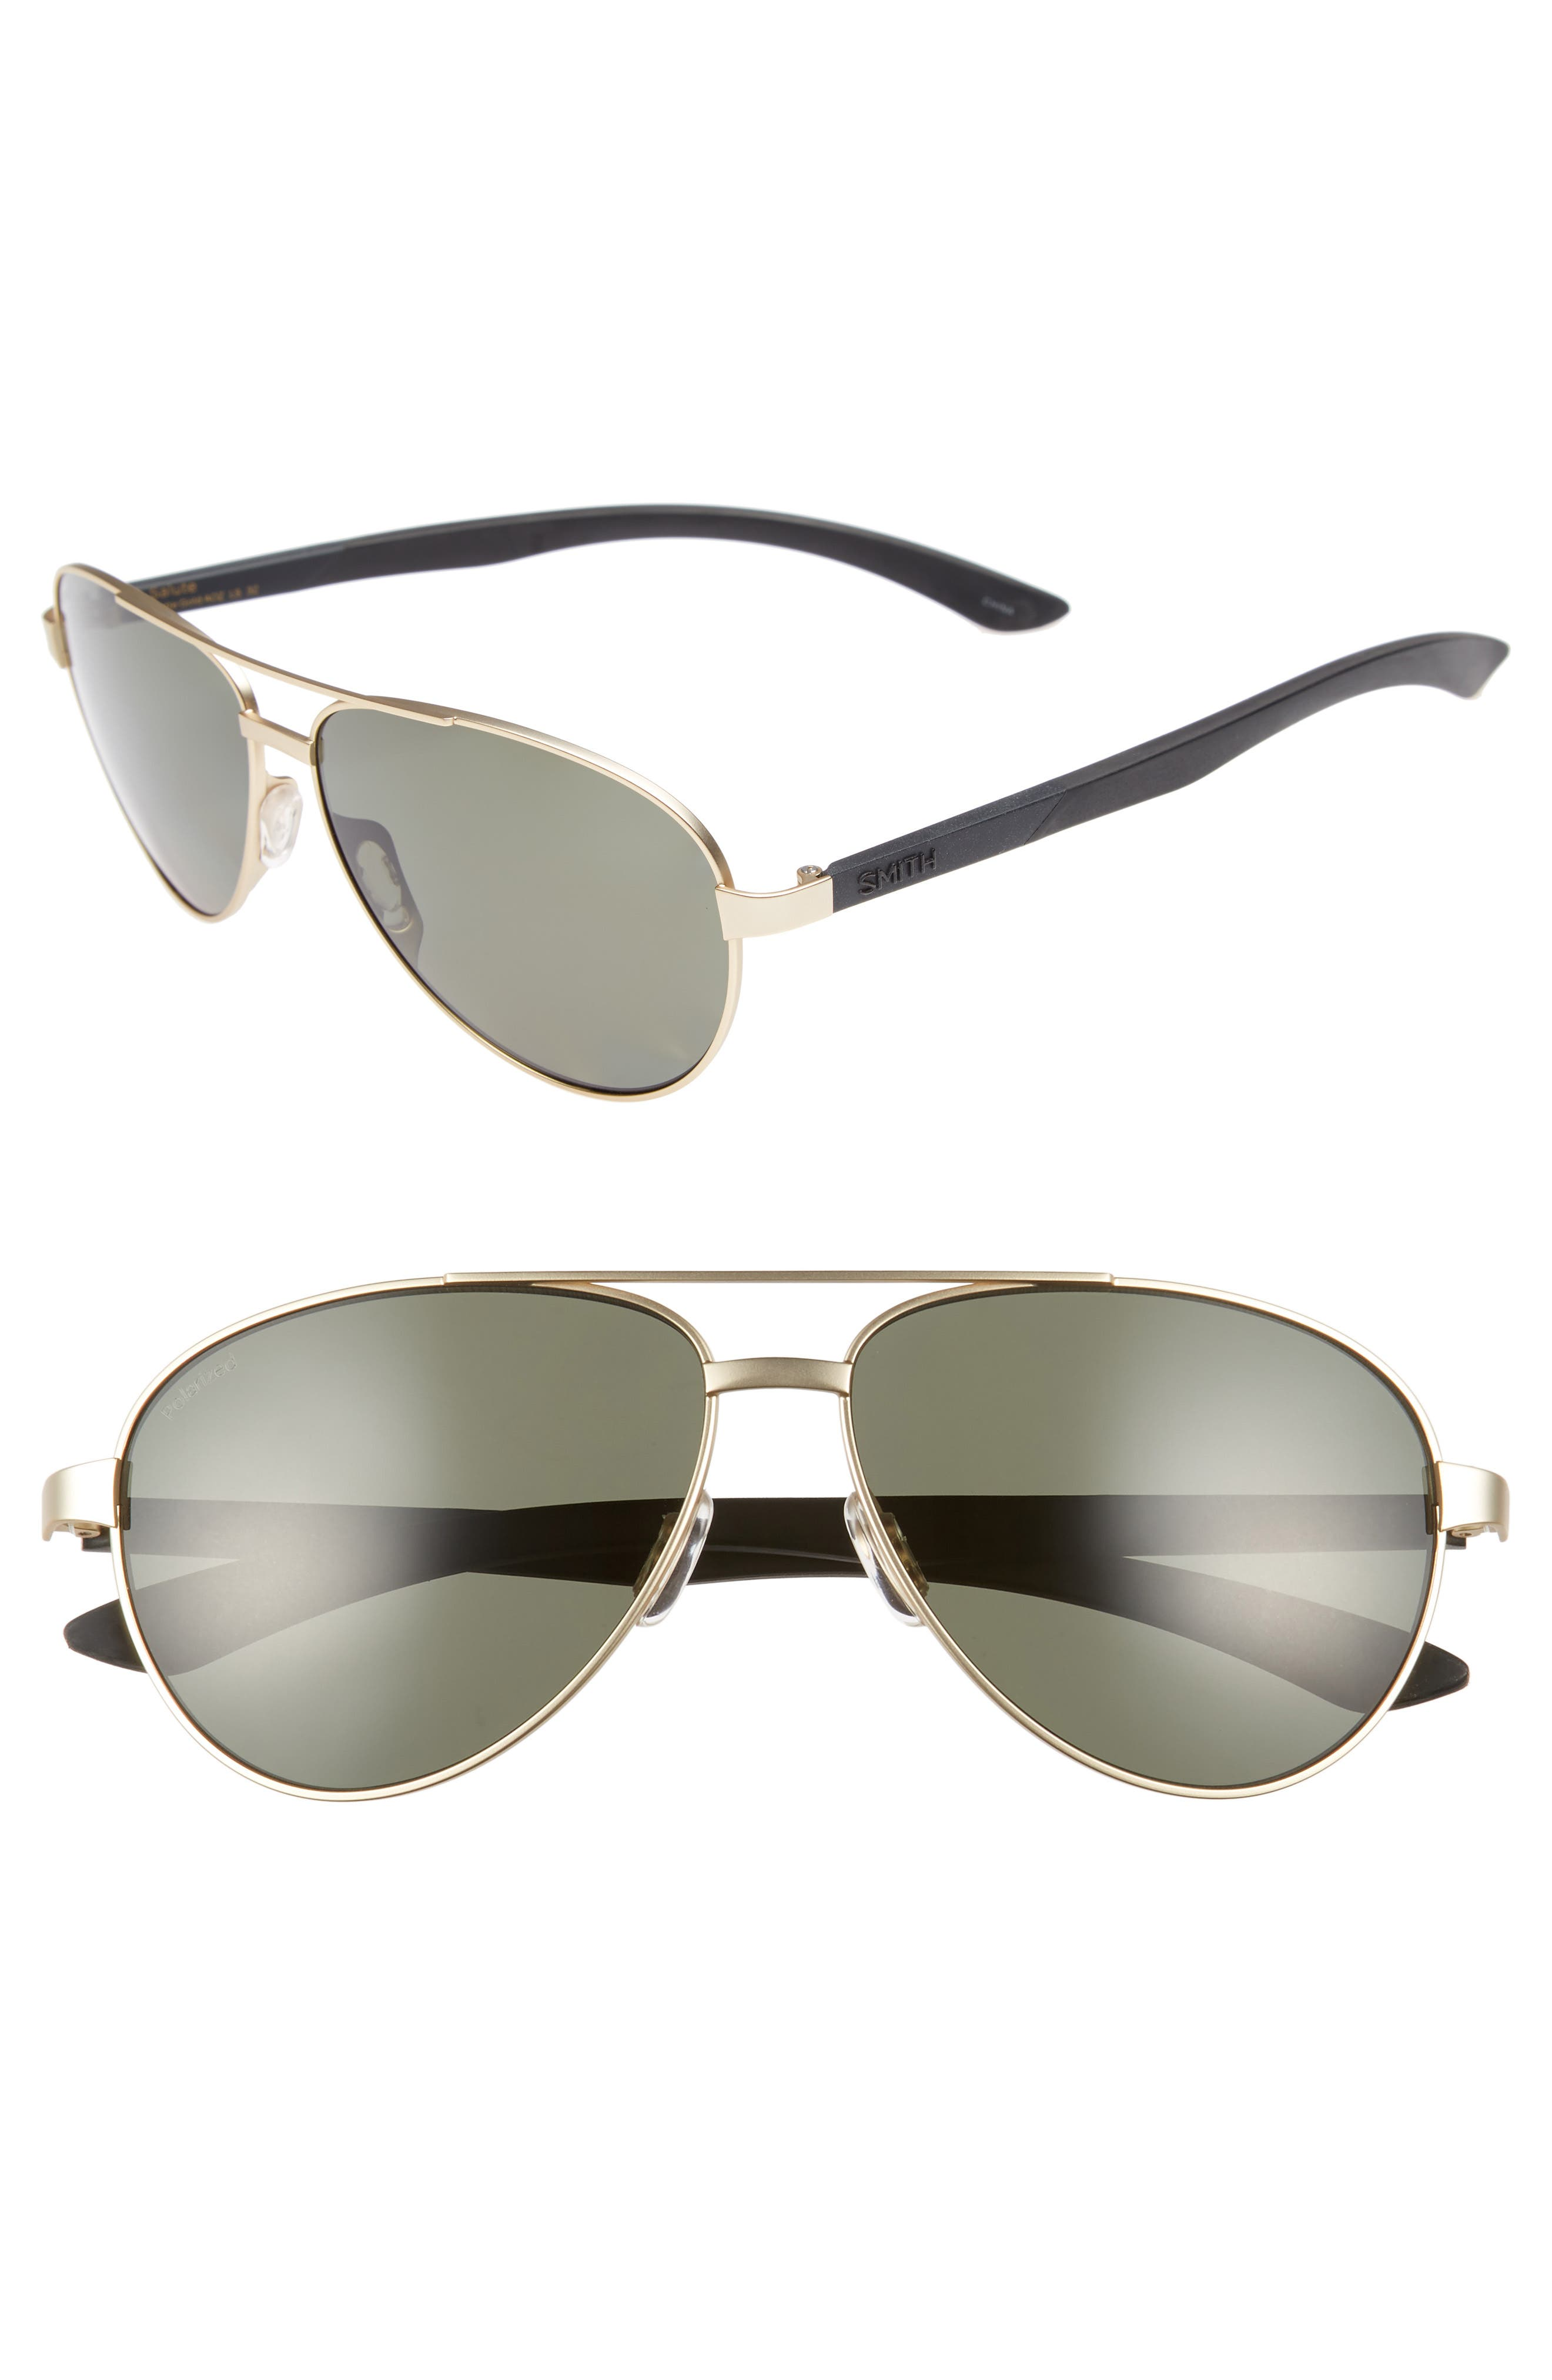 Salute 59mm Polarized Aviator Sunglasses,                         Main,                         color, Matte Gold